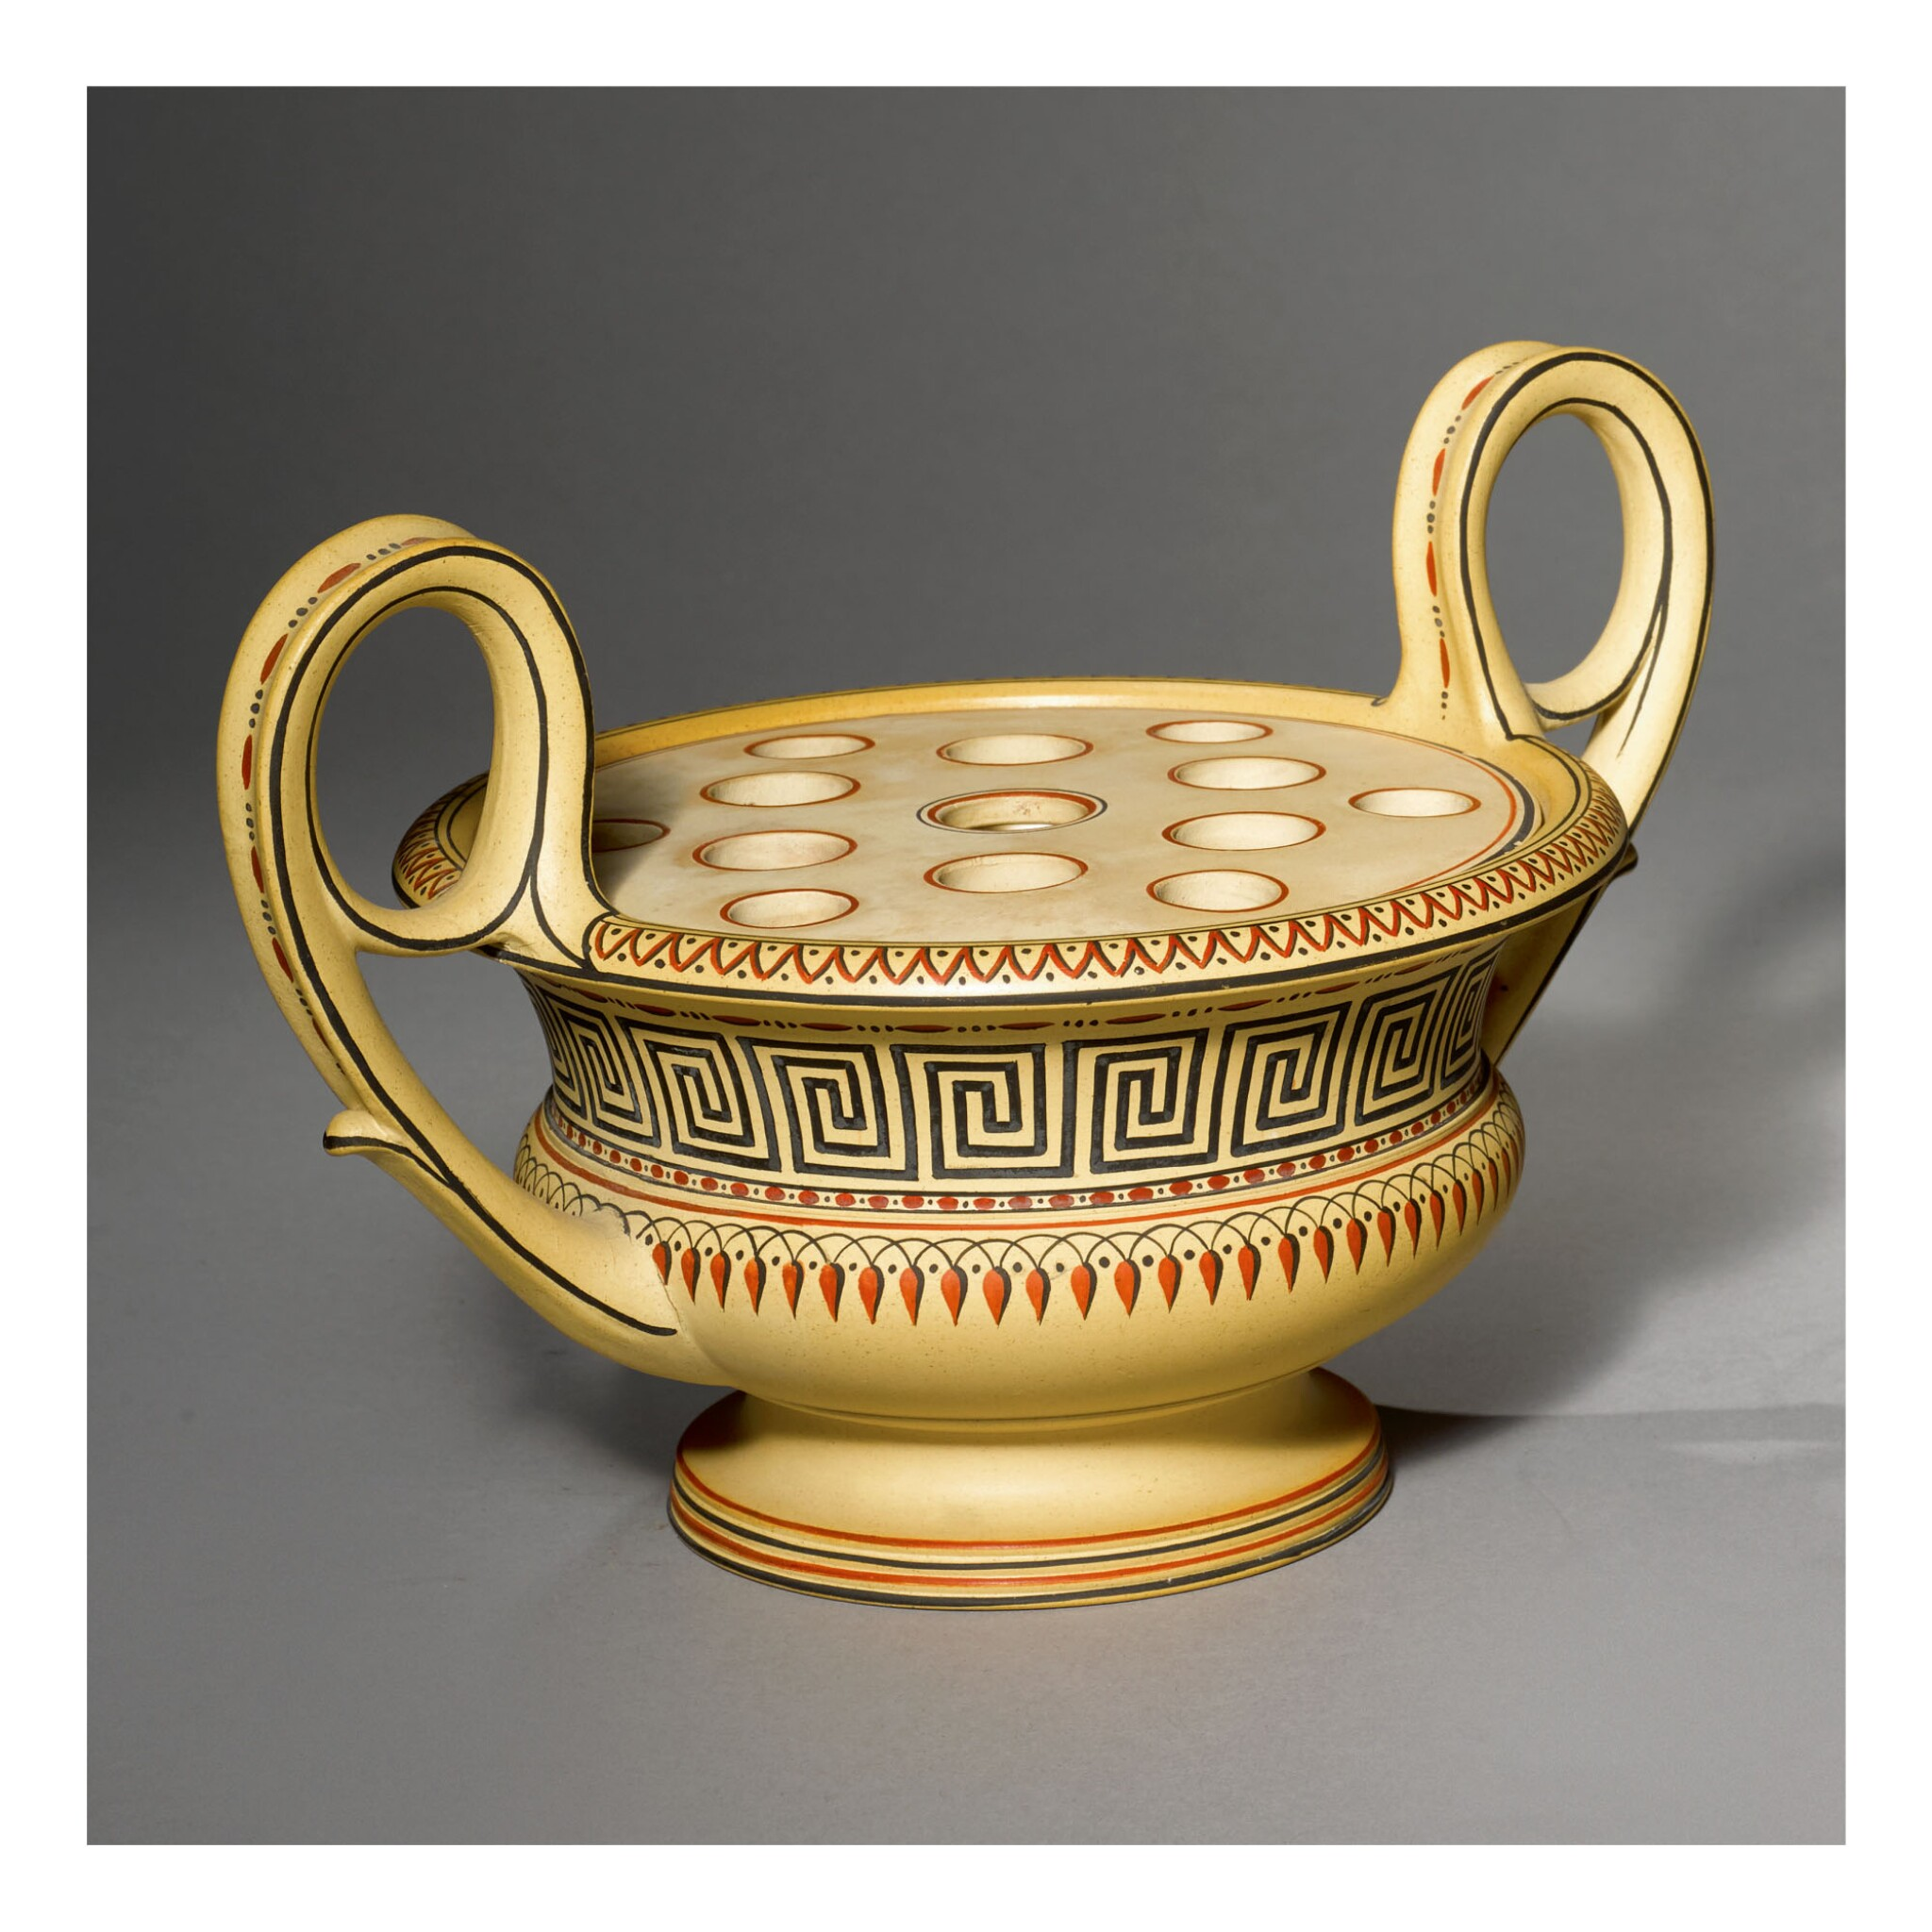 A WEDGWOOD CANEWARE TWO-HANDLED KRATER VASE AND PIERCED COVER LATE 18TH CENTURY